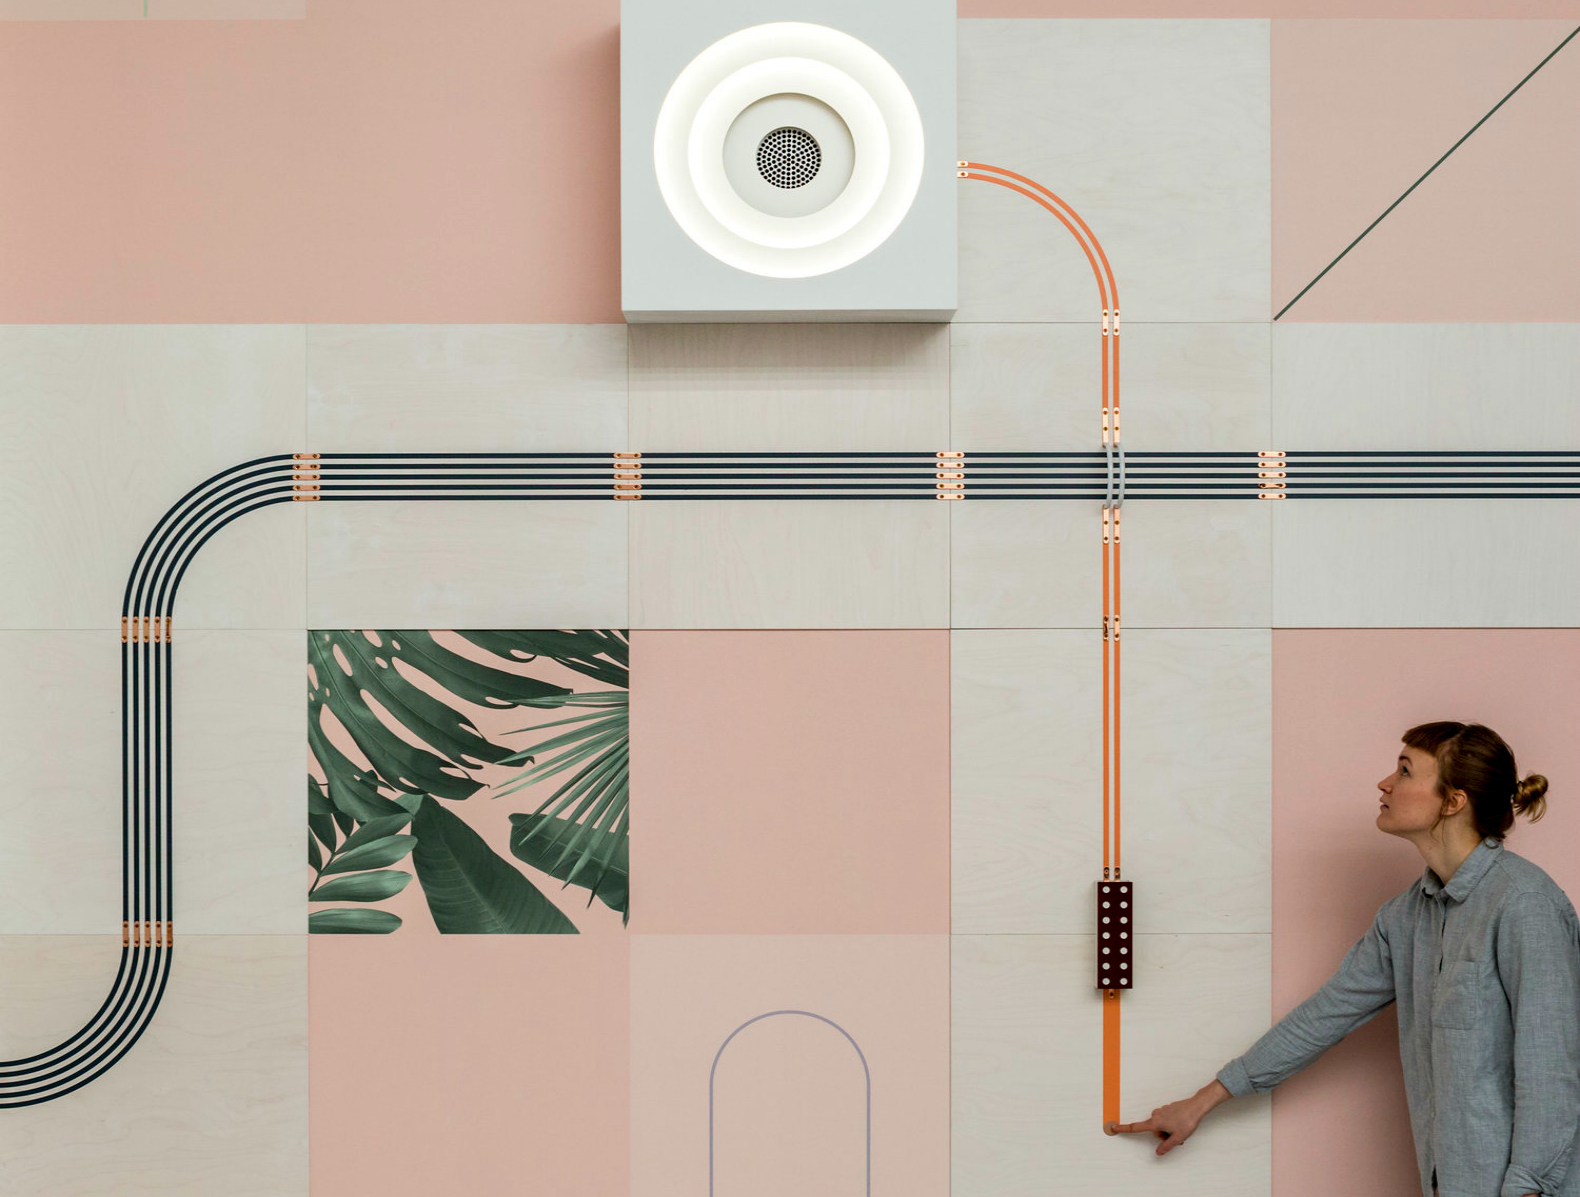 Brilliant Conductive Wallpaper Shows The Energy Running